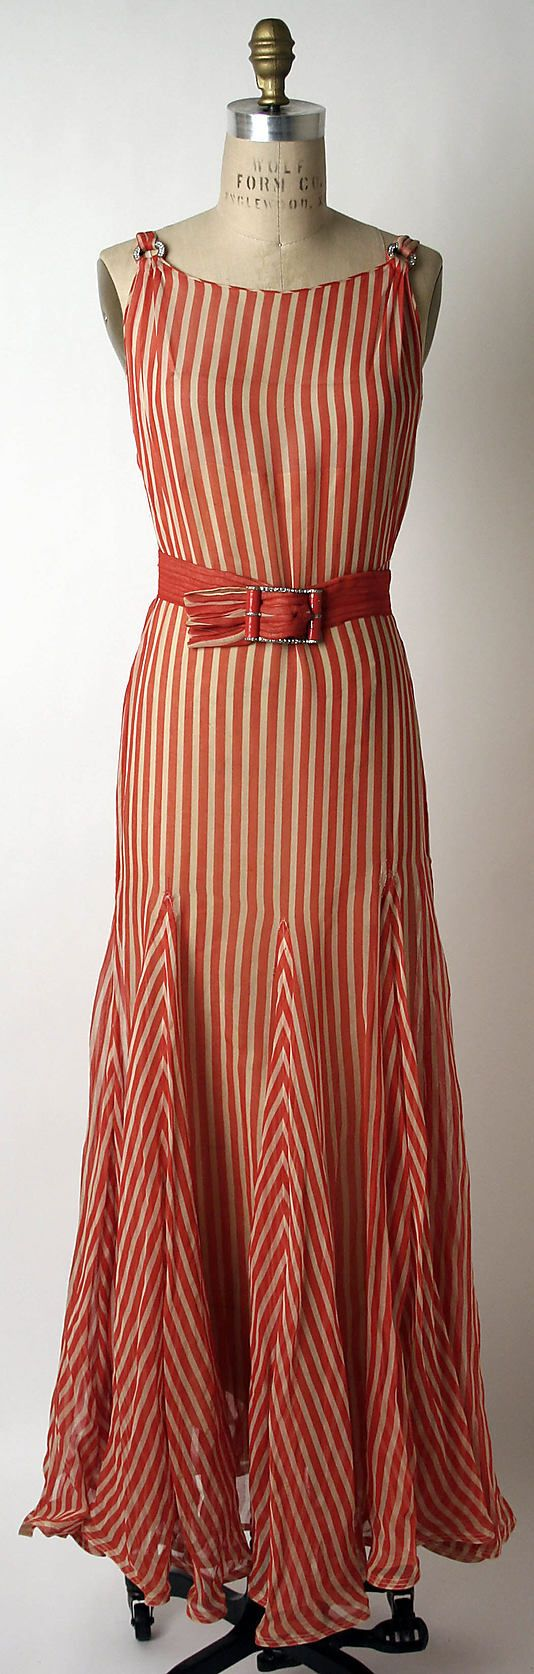 evening dress of sheer striped fabric (probably organdy or organza) w/ 8-gored skirt (instead of bias all over, just the gores are bias) & 4 shoulder rings (2 front, 2 back) part of Evening Ensemble (also includes a cape w/ tie, pleated belt & nude slip) by Norman Norell for Hattie Carnegie Inc, ca. 1932